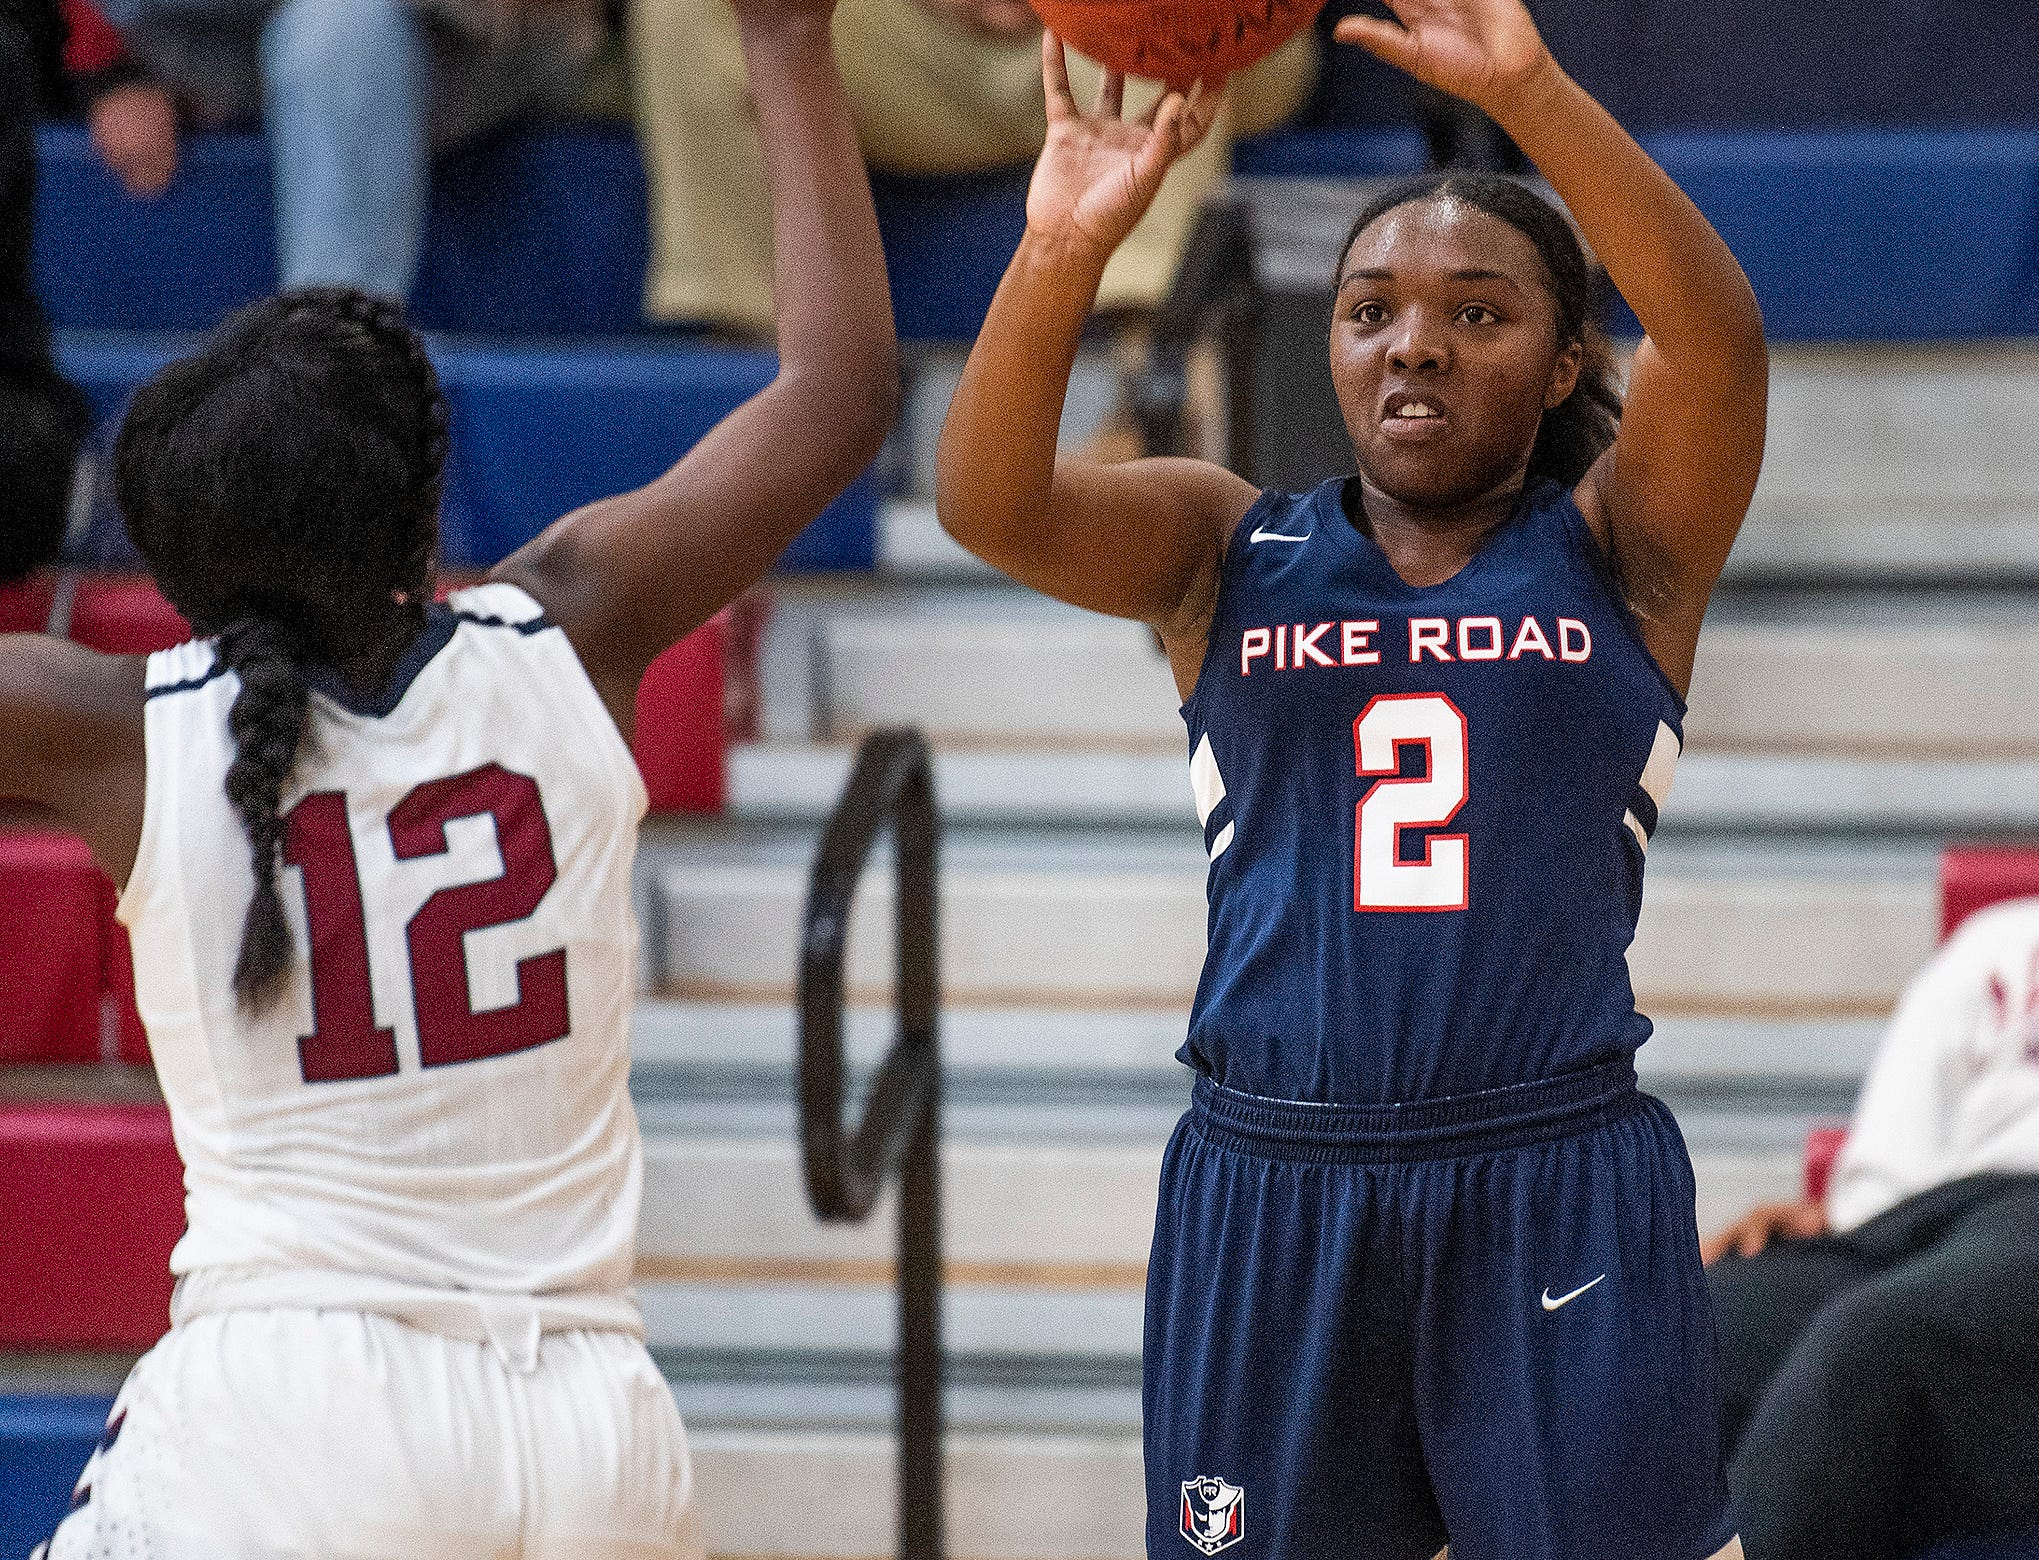 Pike Road's Sheria Clement (3) shoots against Montgomery Academy on the MA campus in Montgomery, Ala., on Friday February 8, 2019.